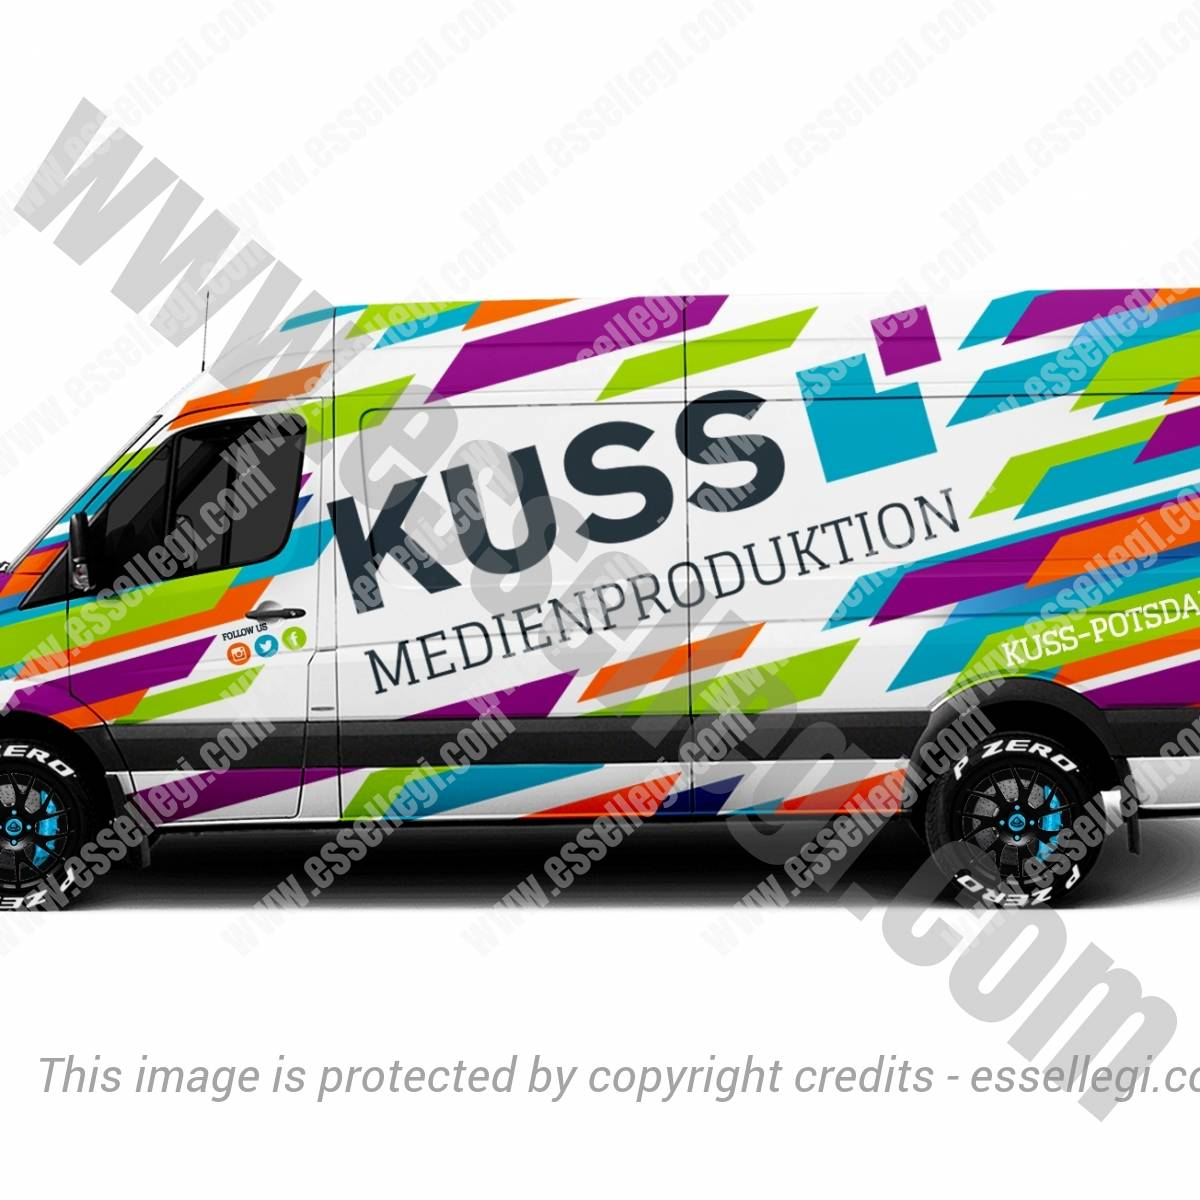 KUSS | VAN WRAP DESIGN 🇩🇪